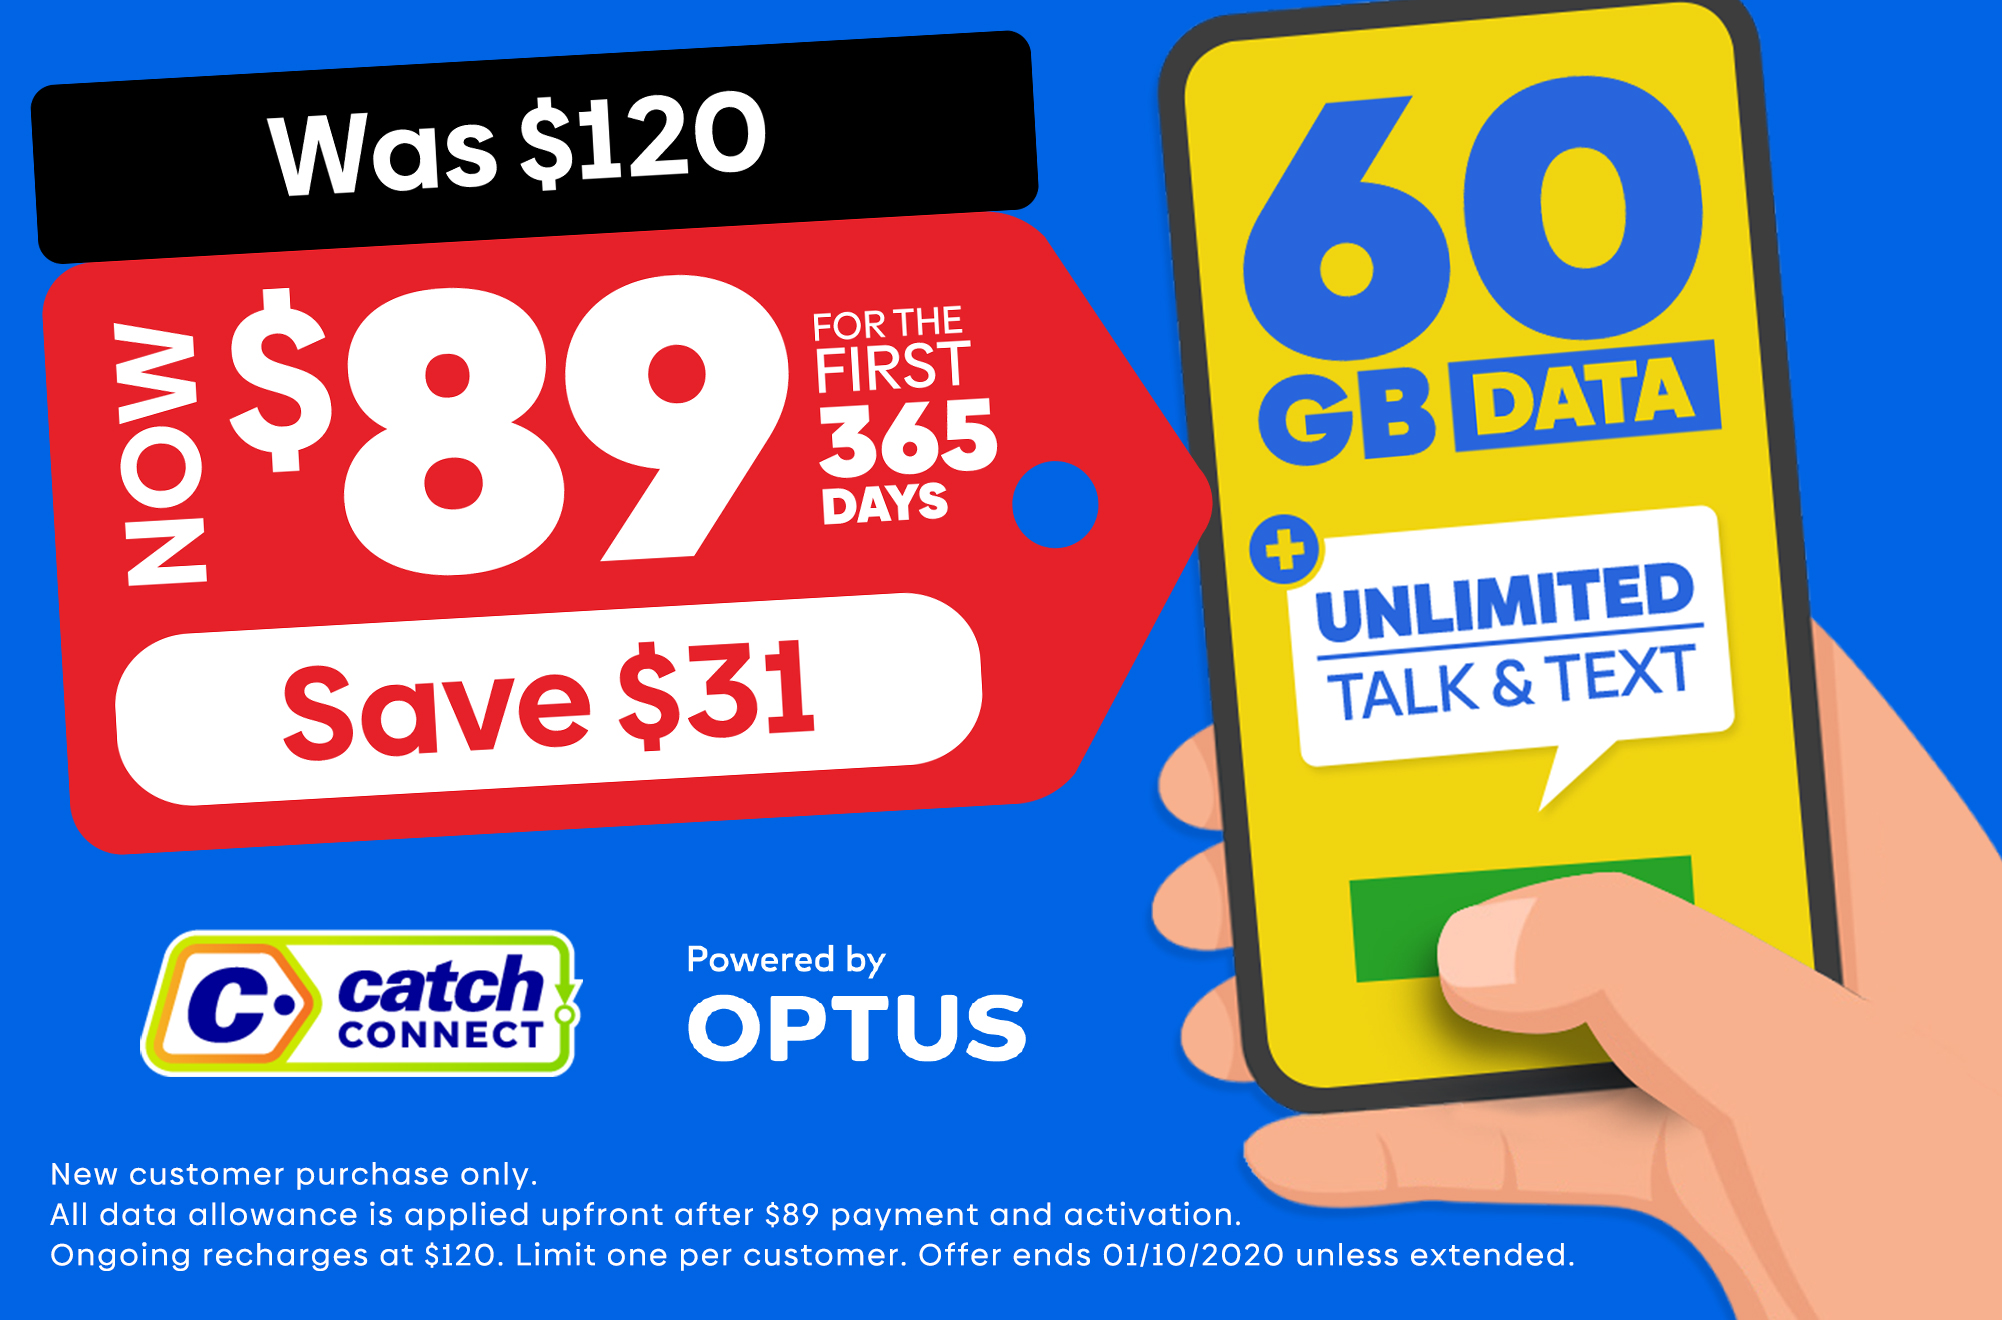 Big Gigs. Call, text, download, stream, repeat! Catch Connect | Powered by Optus